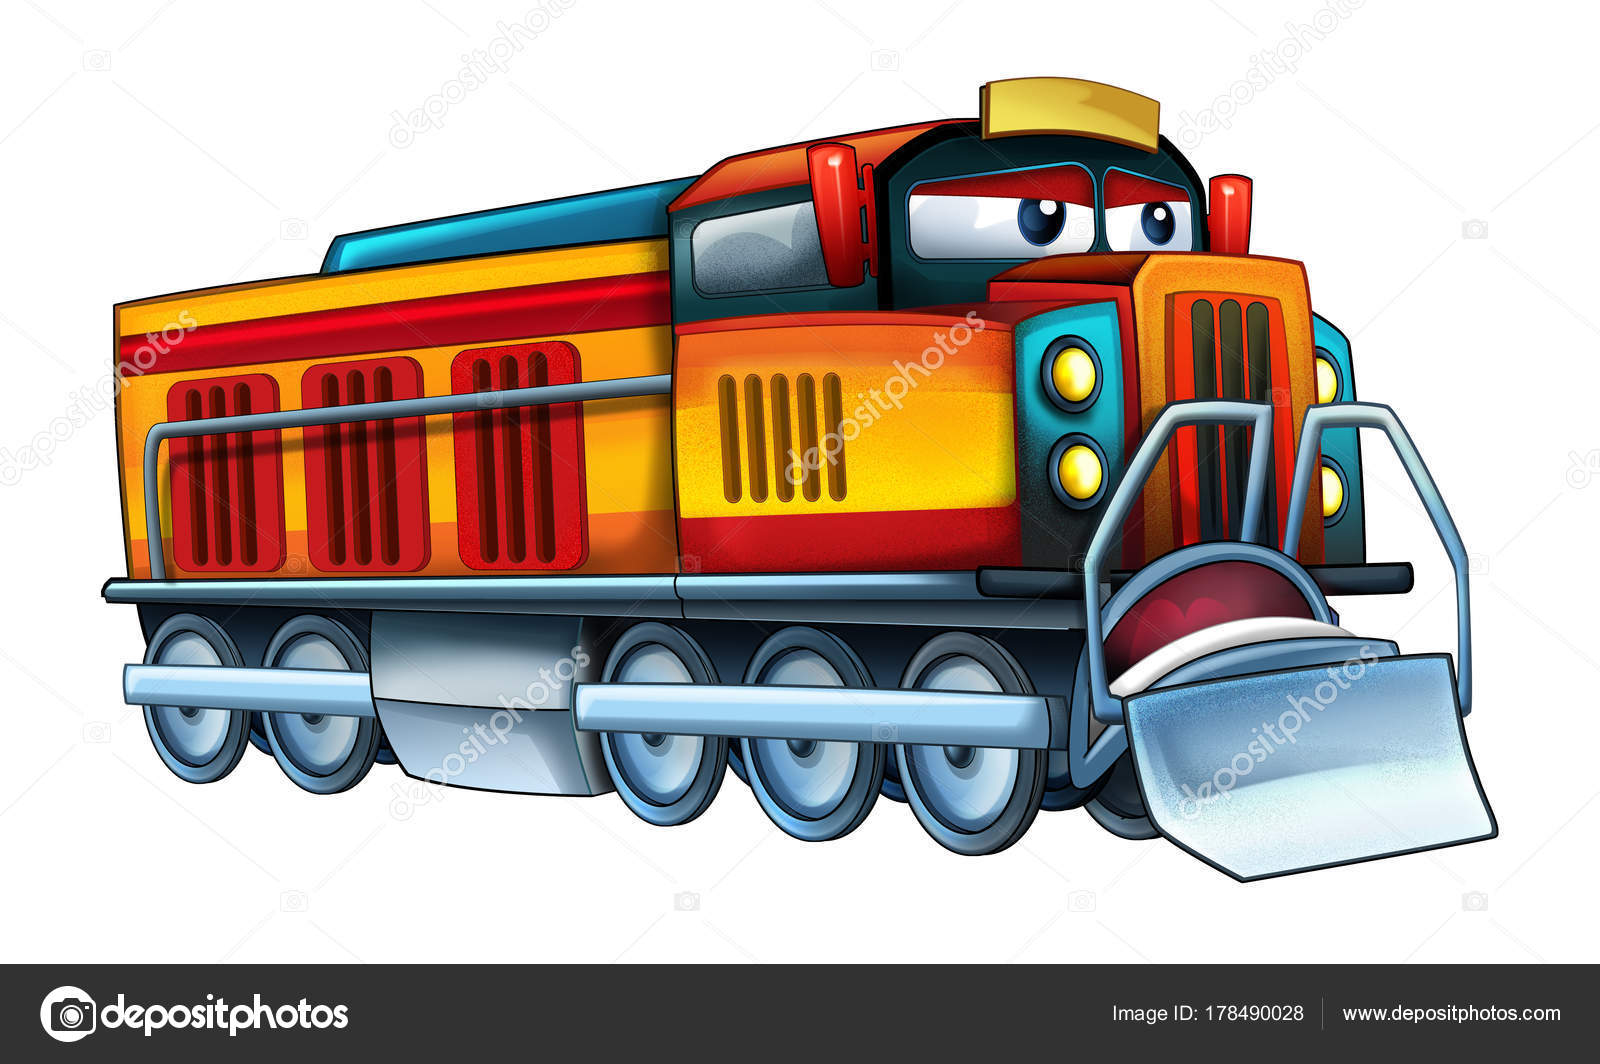 Full Download Caricatura De Trenes Dibujos Animados